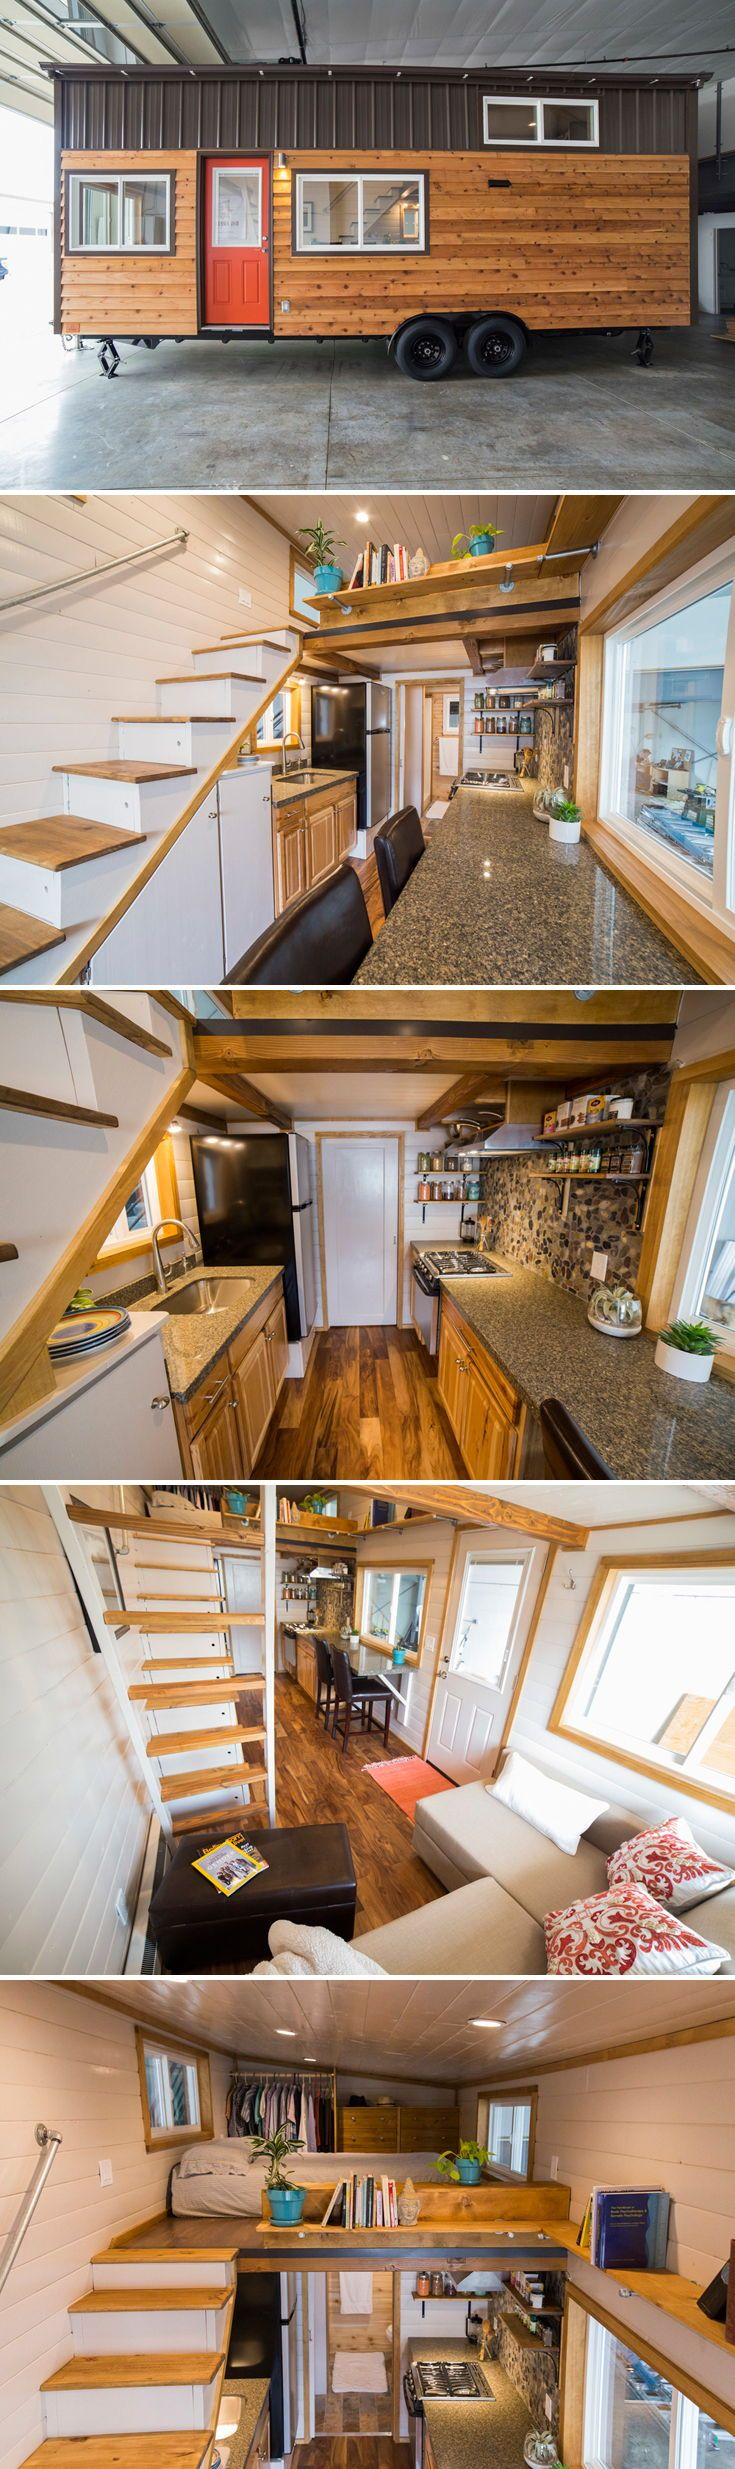 Custom Tiny House by Big Freedom Tiny Homes - Tiny Living